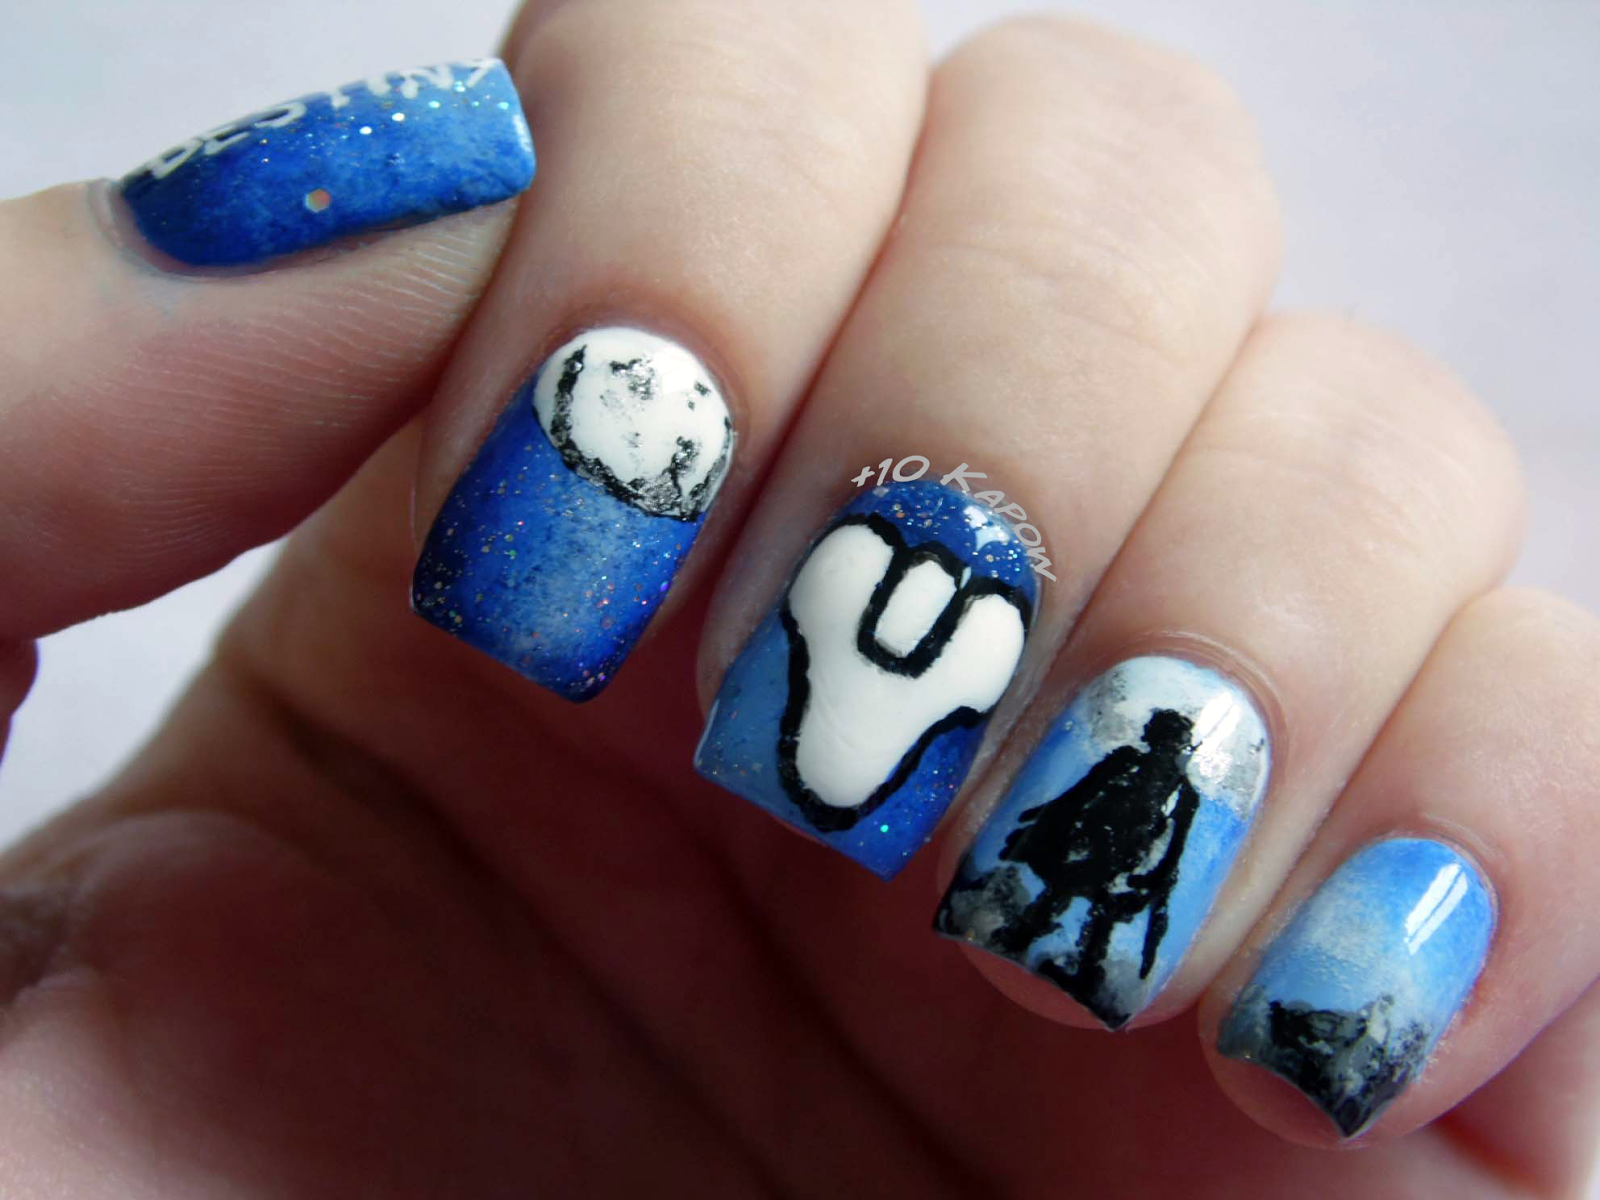 Video game nail designs images nail art and nail design ideas plus10kapow destiny nails geekery pinterest nail art videos plus10kapow destiny nails nail art videosnerdnails gamesnail nail prinsesfo Image collections